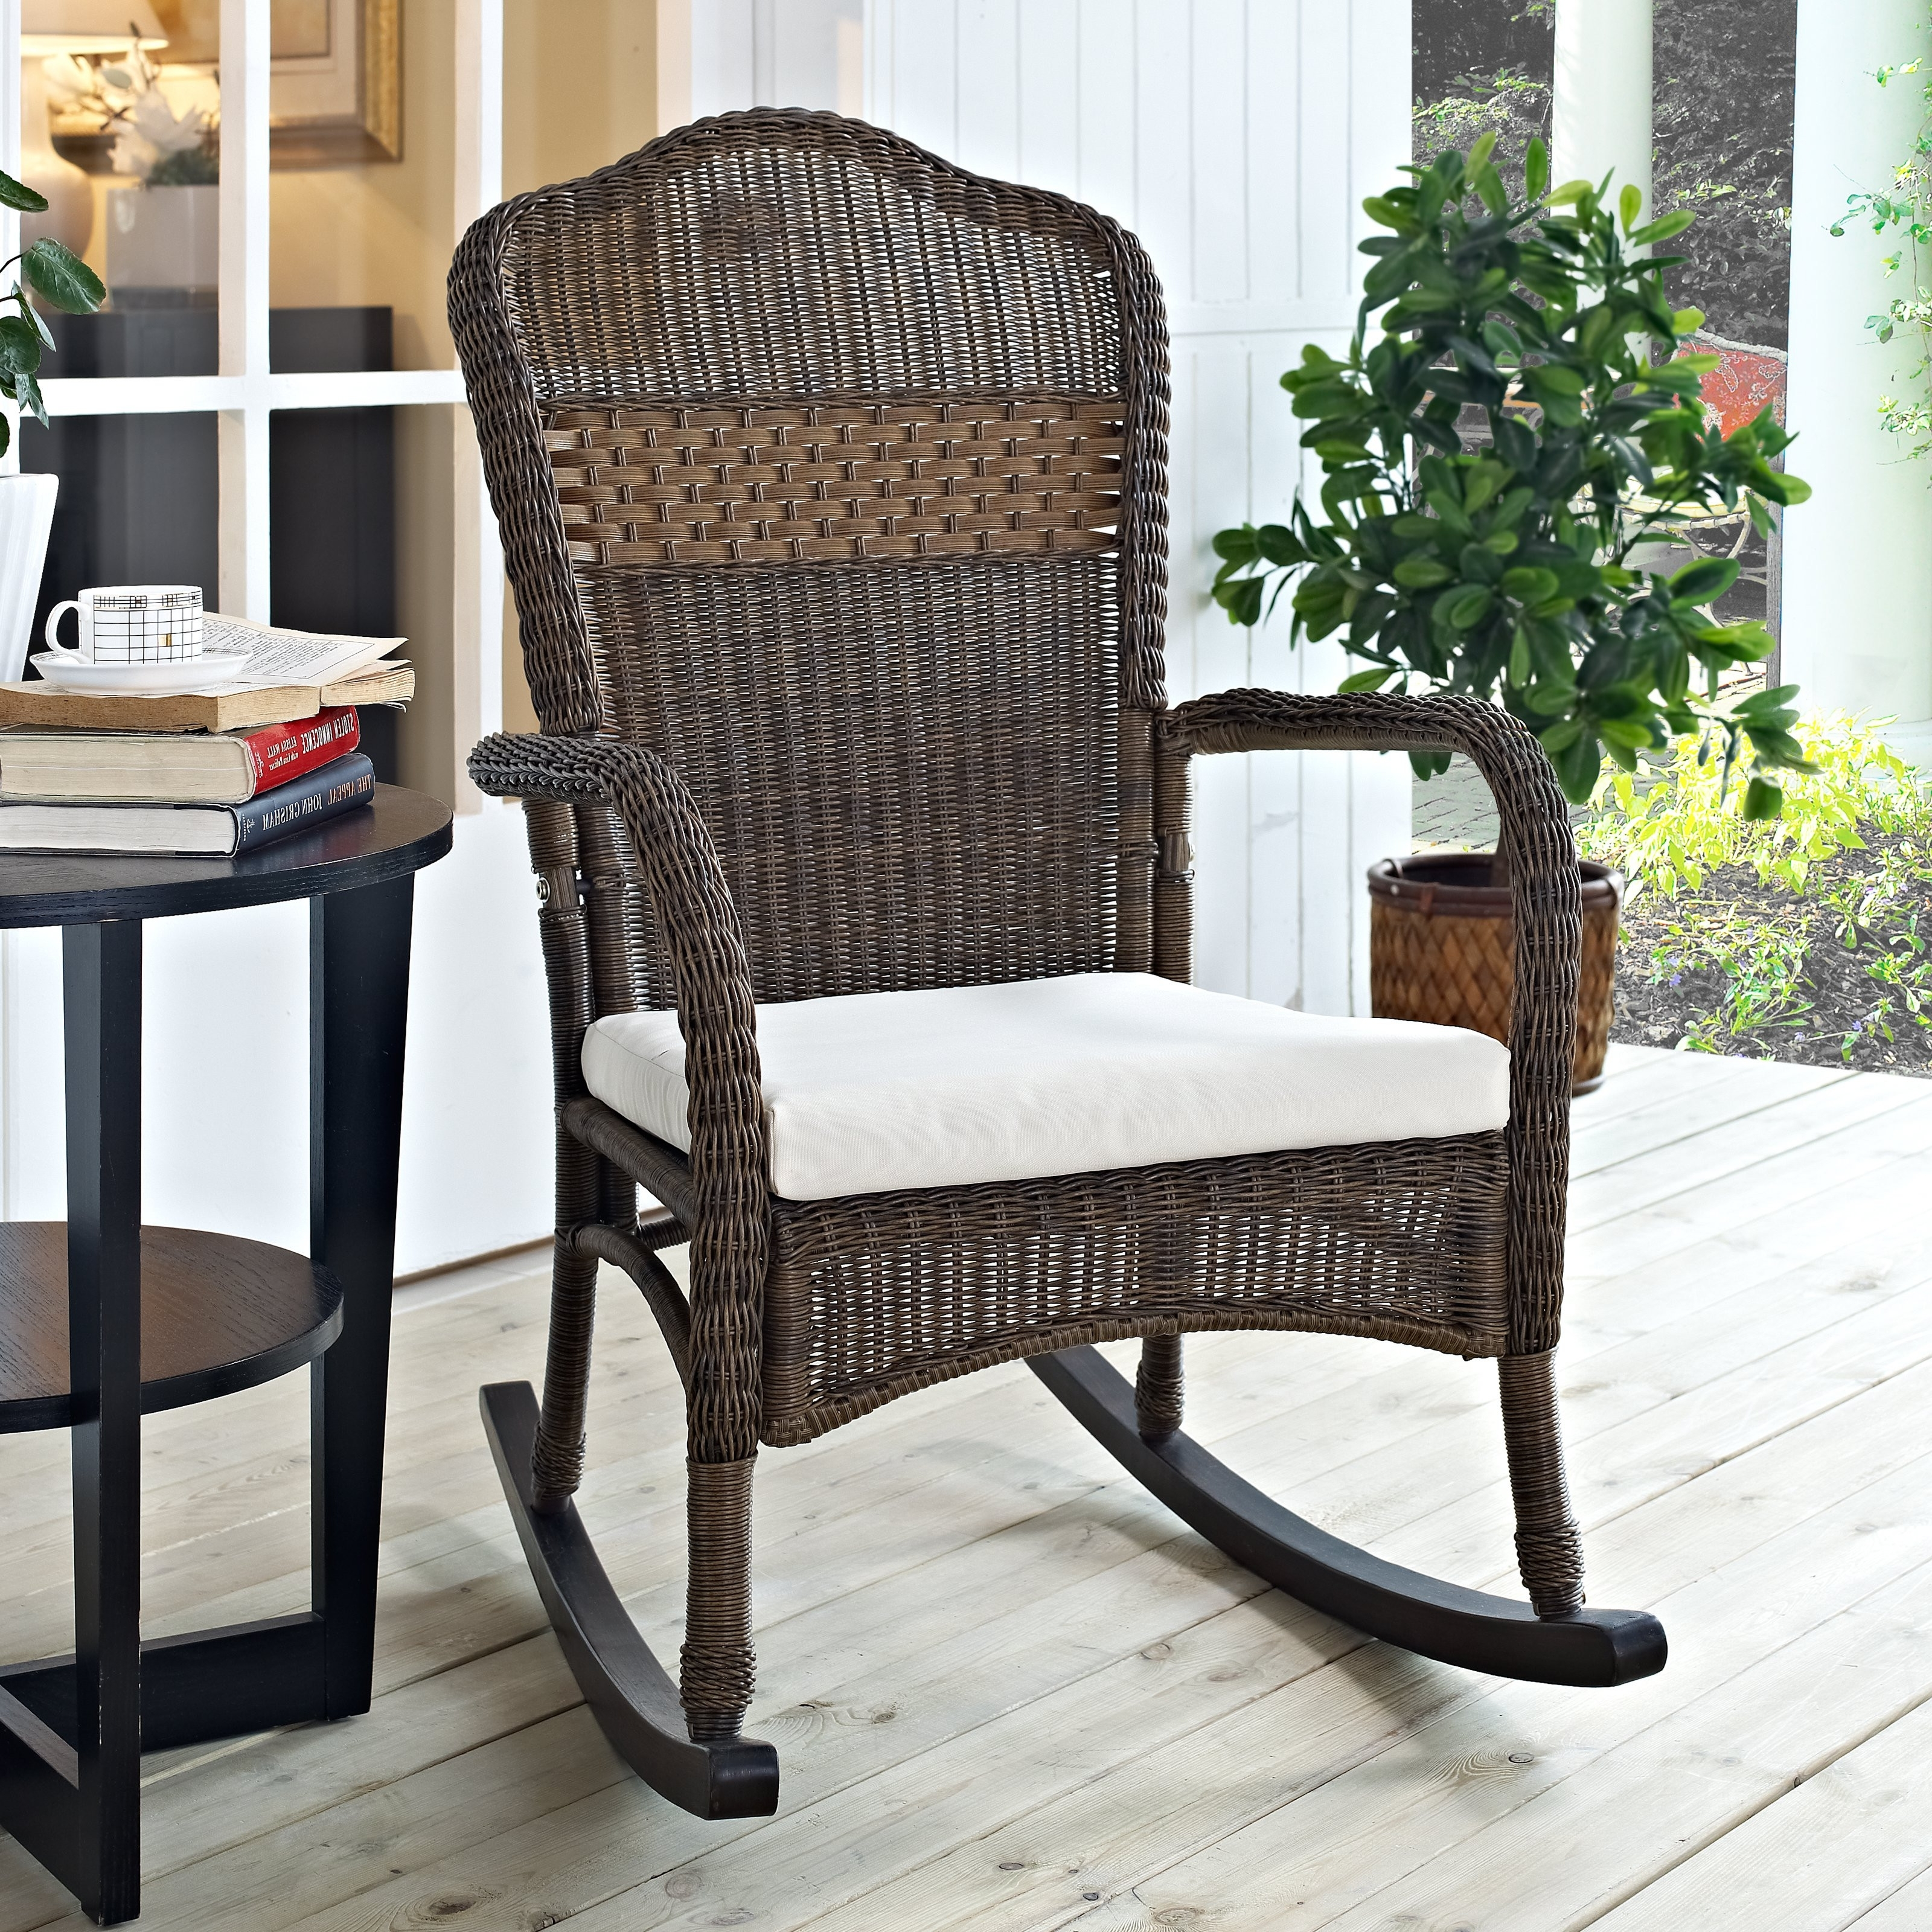 Rocking Chairs For Outdoors Intended For Most Recently Released 30 Fresh Lowes Patio Furniture Clearance Design (View 12 of 20)